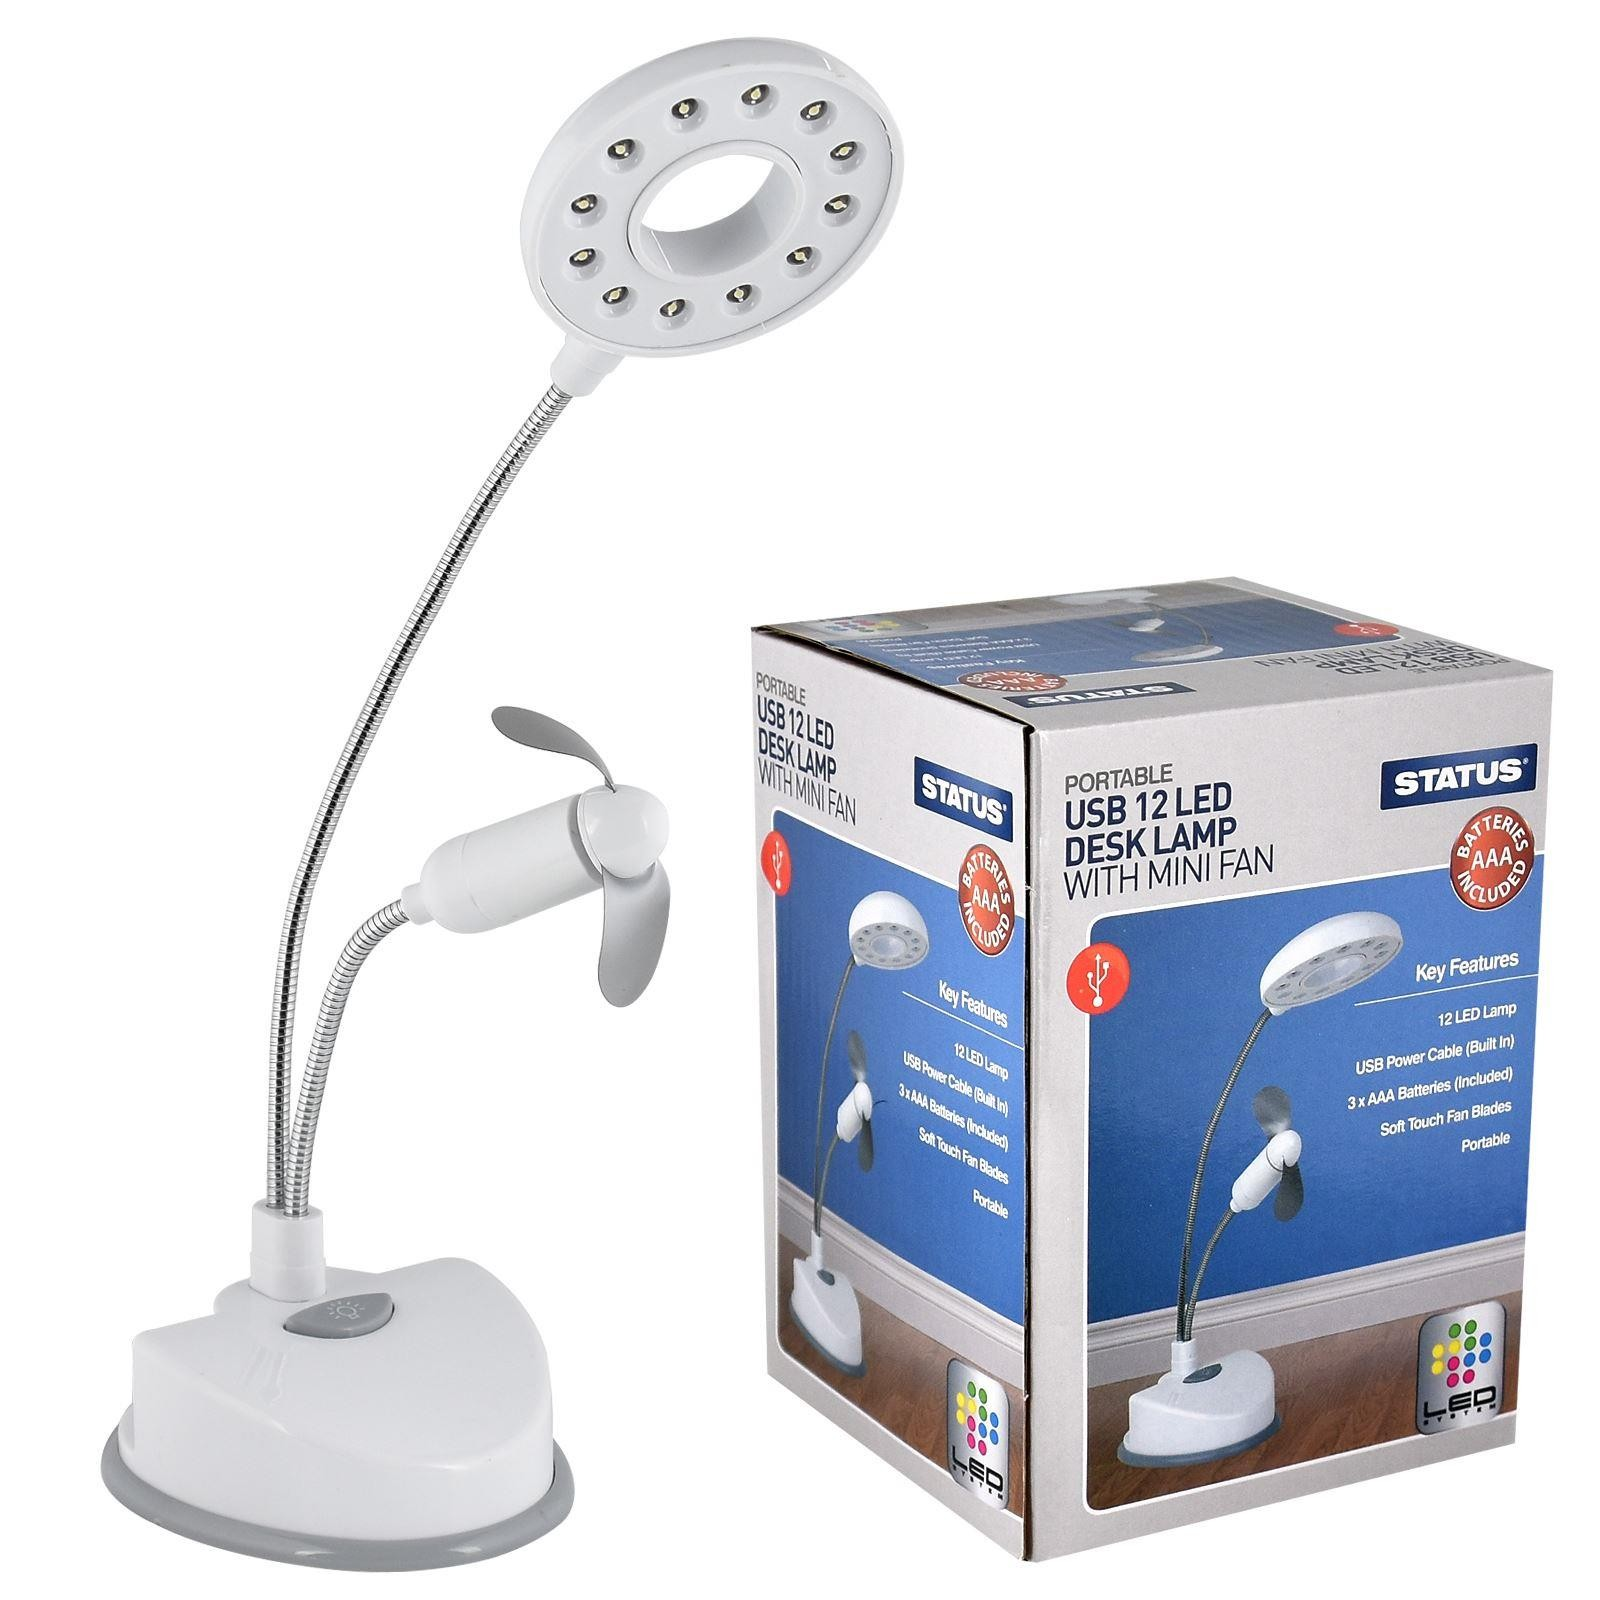 pretty staples usb lamps touch walmart with led two hotel desk lamp lighting port sunlight desks canada office lovely outlets